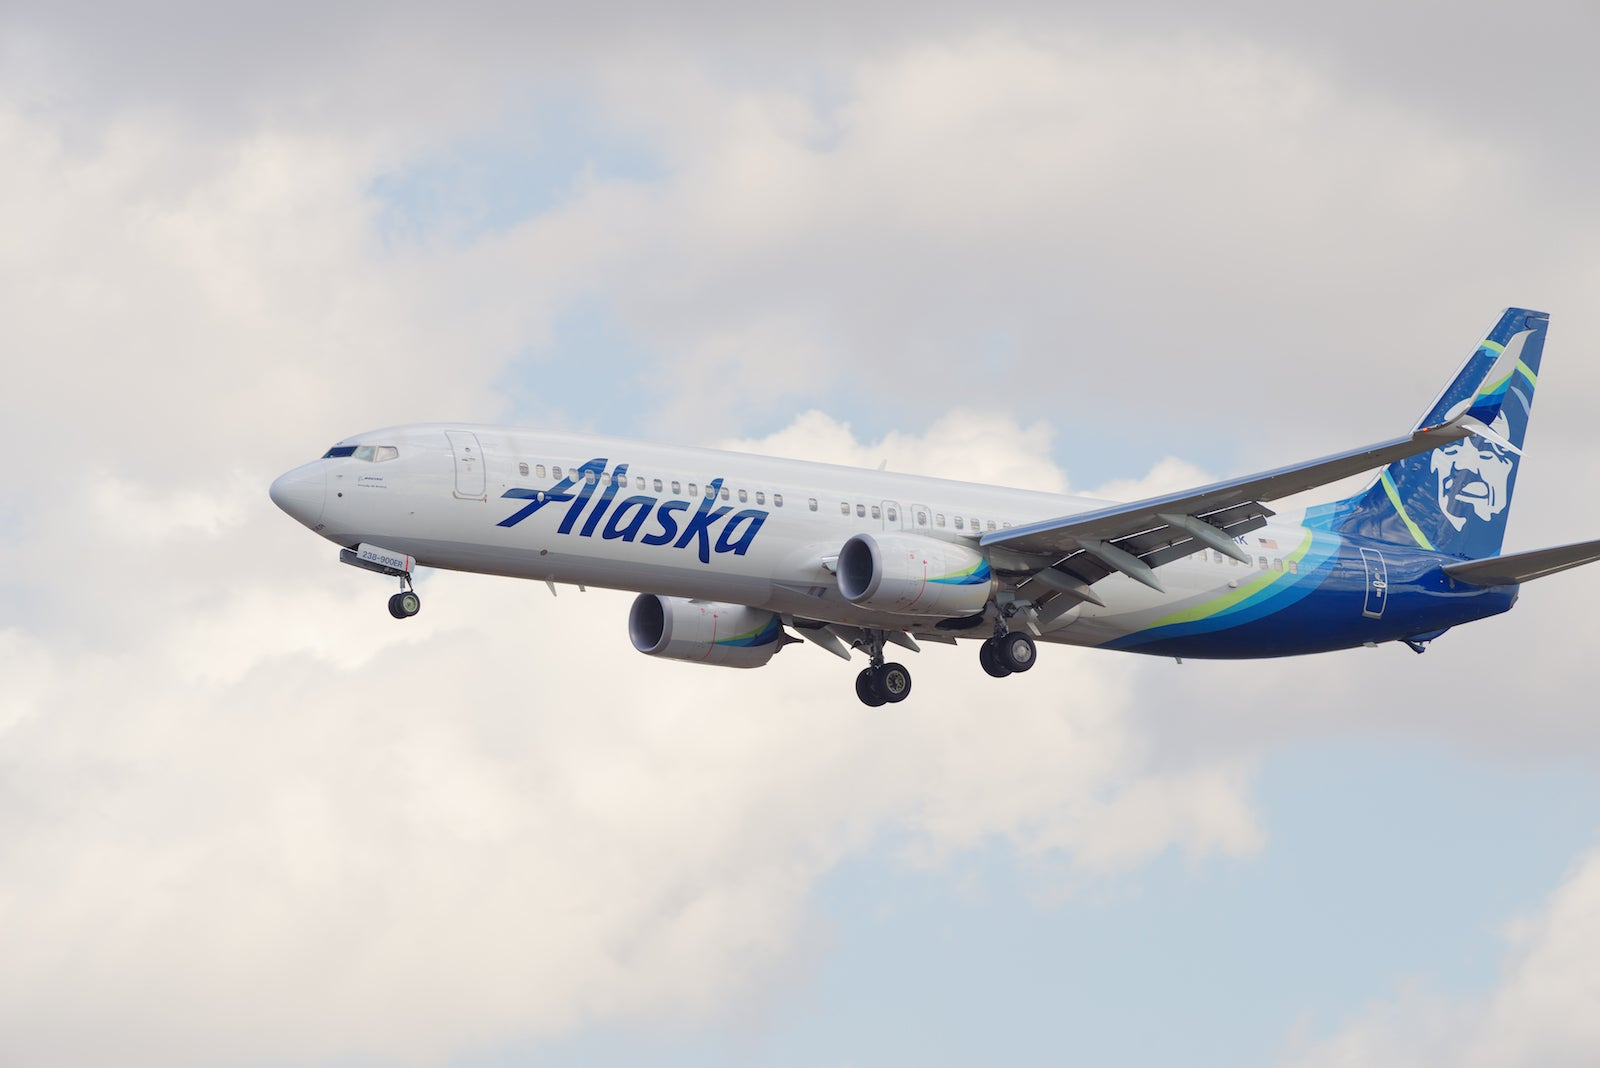 Alaska Airlines miles and elite status now easier to earn (temporarily)